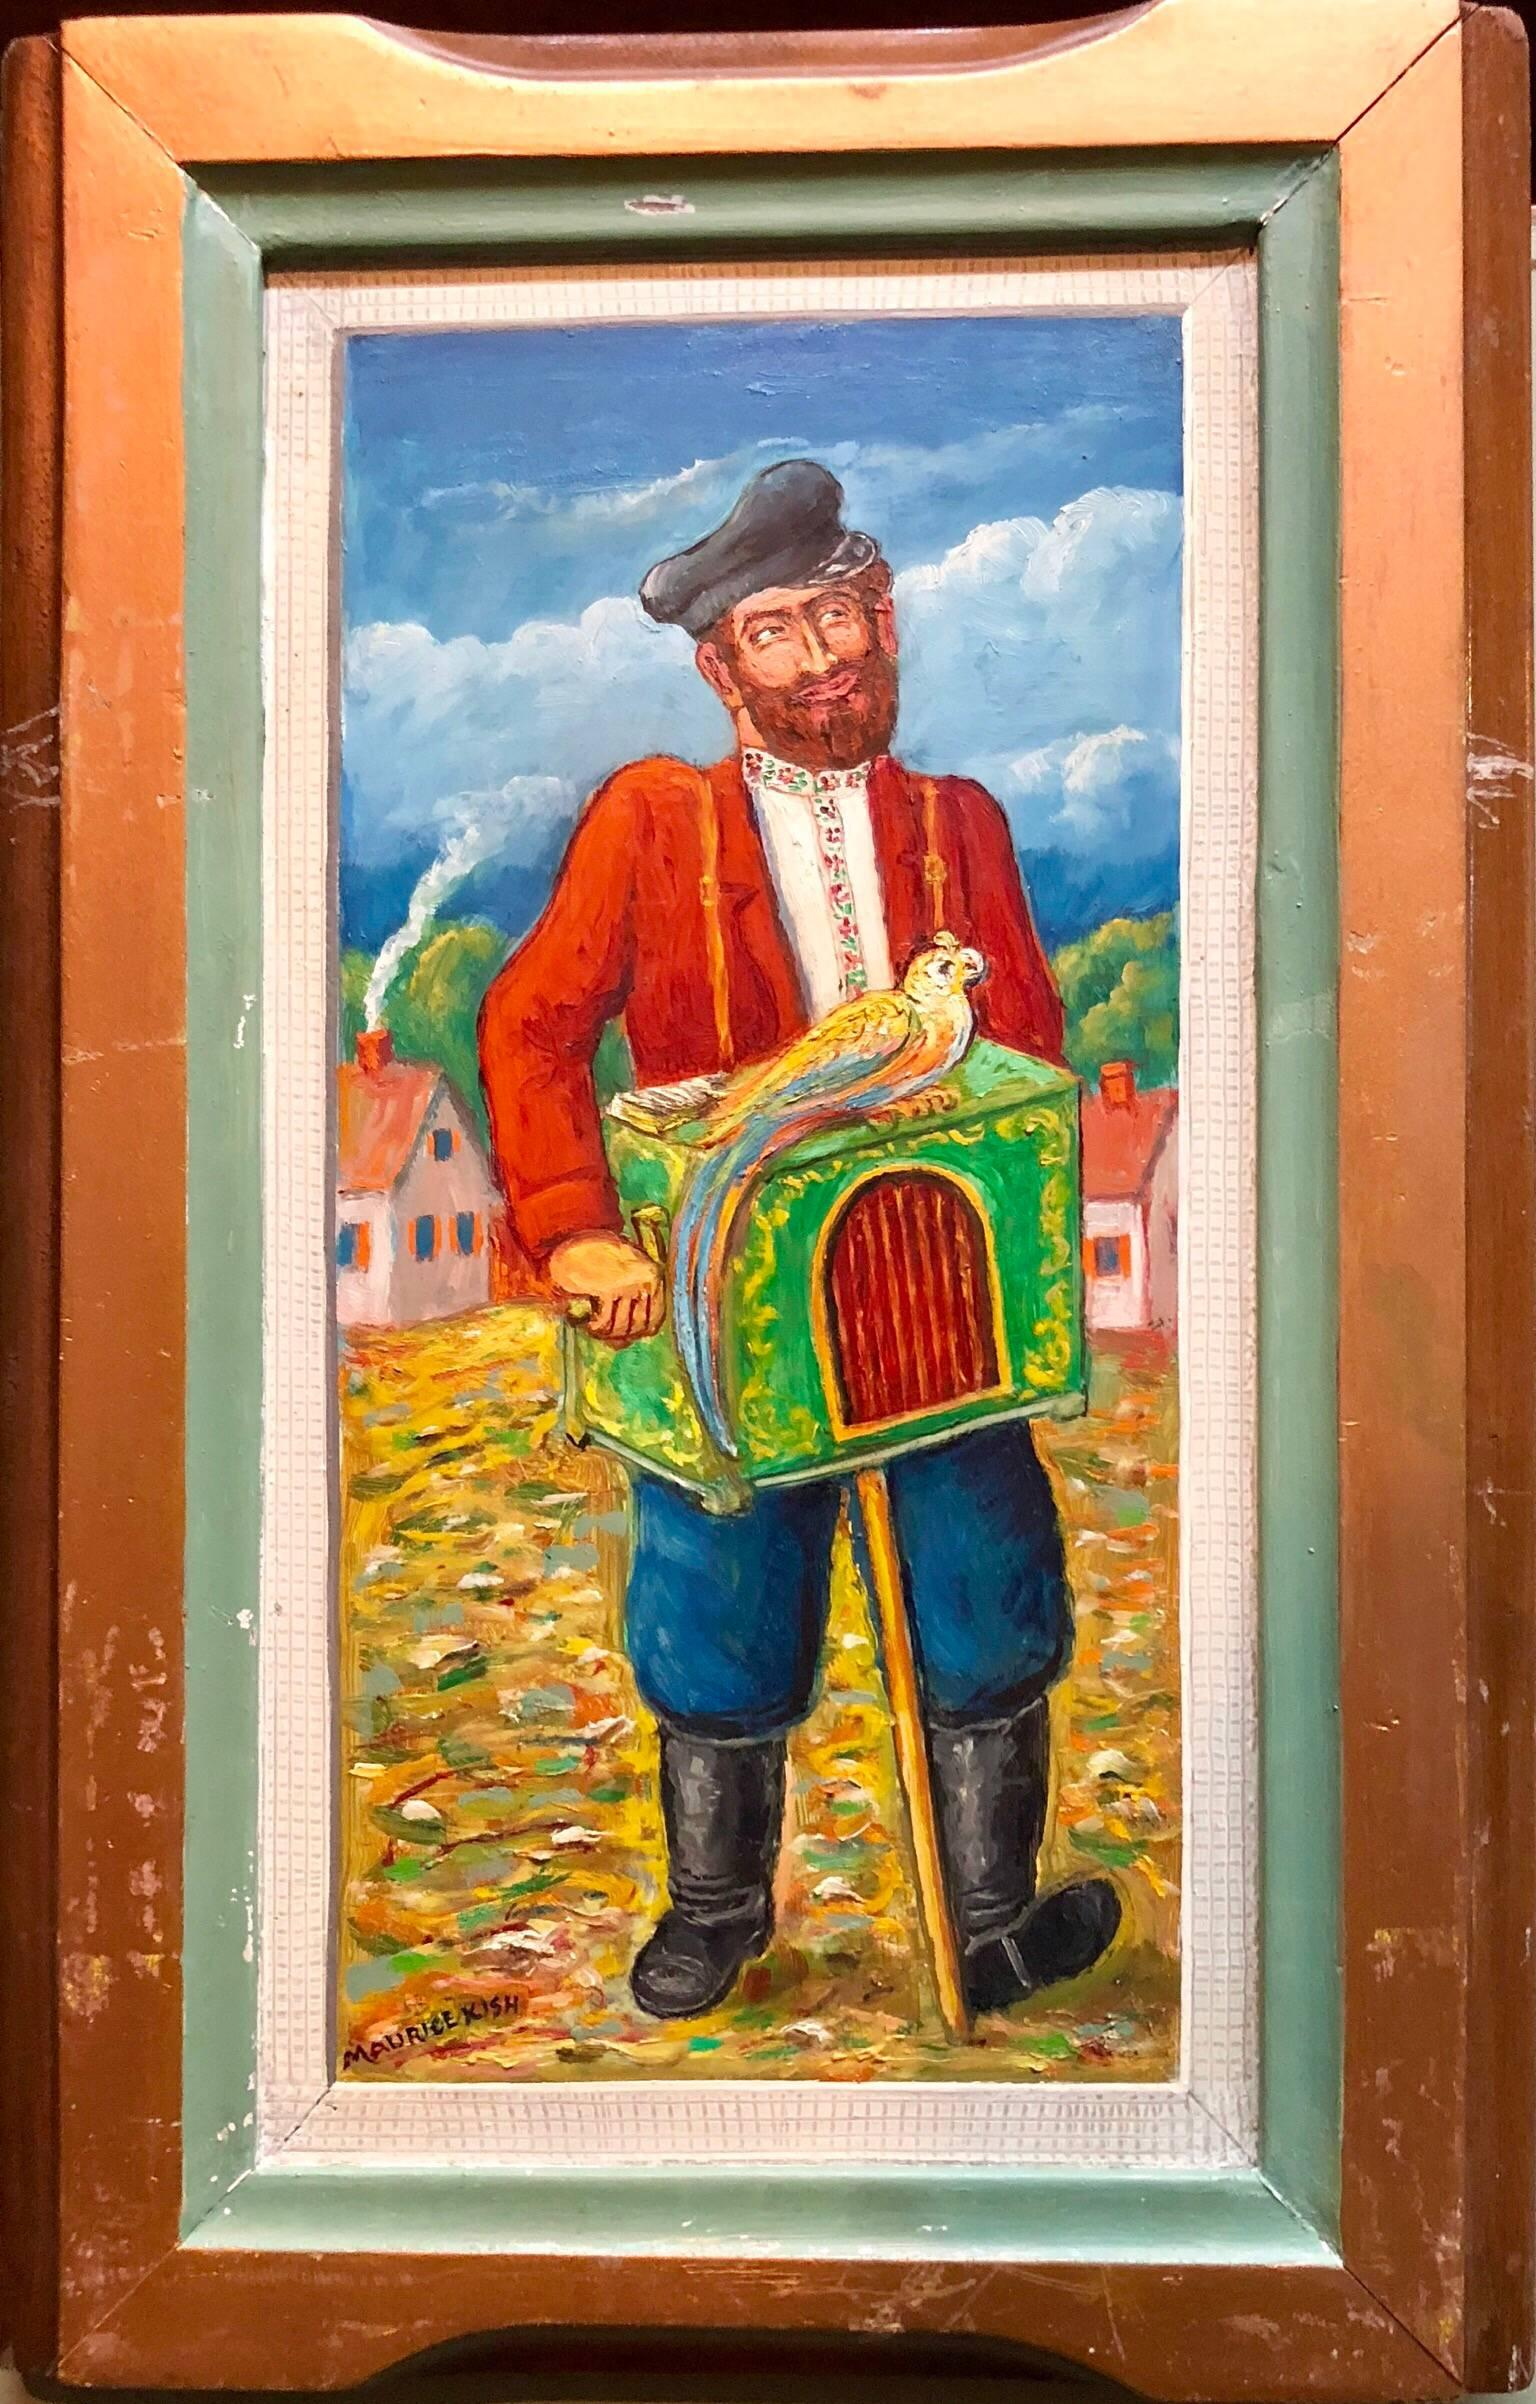 Maurice Kish Organ Grinder With Parrot Modern Judaica Oil Painting Wpa Jewish Artist For Sale At 1stdibs